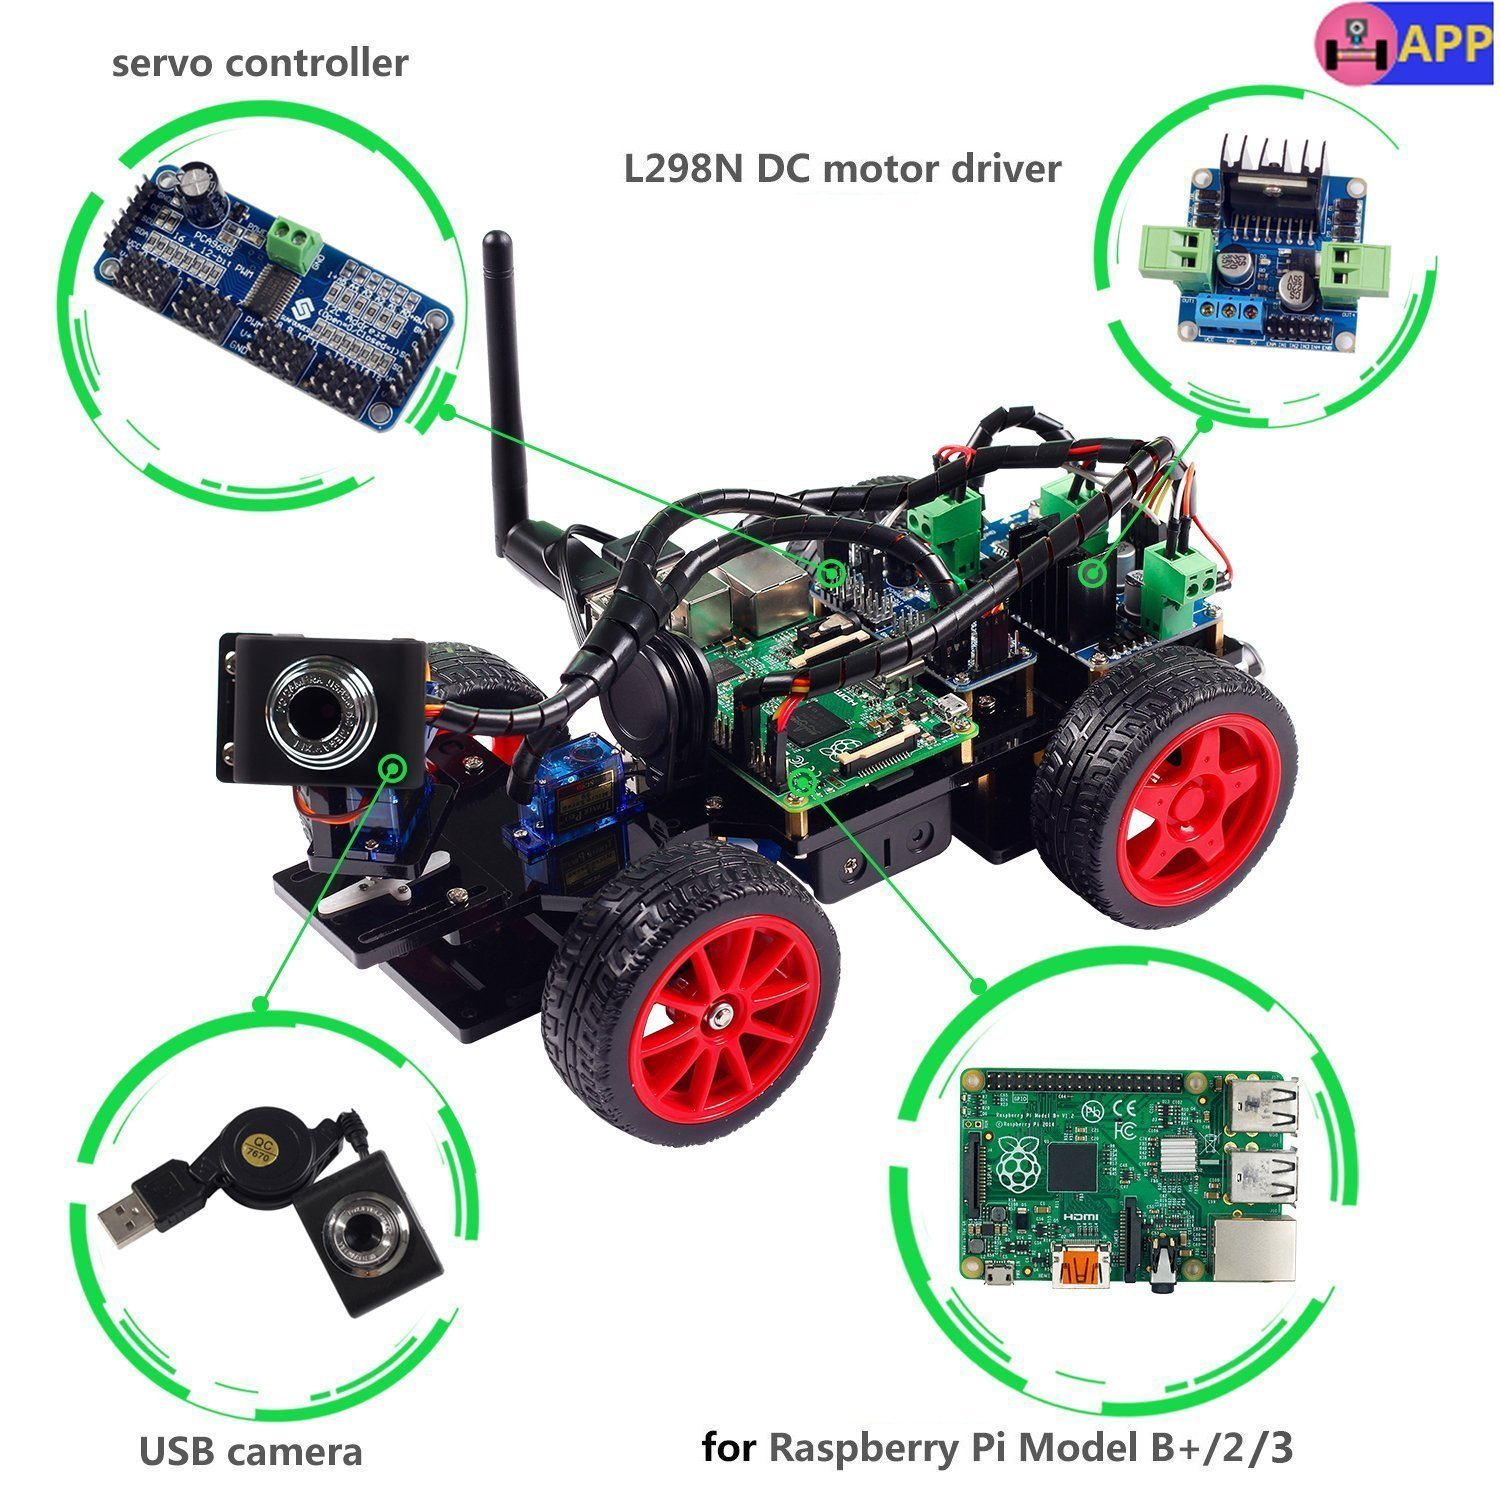 Amazon Smart Video Car Kit for Raspberry Pi with Android App